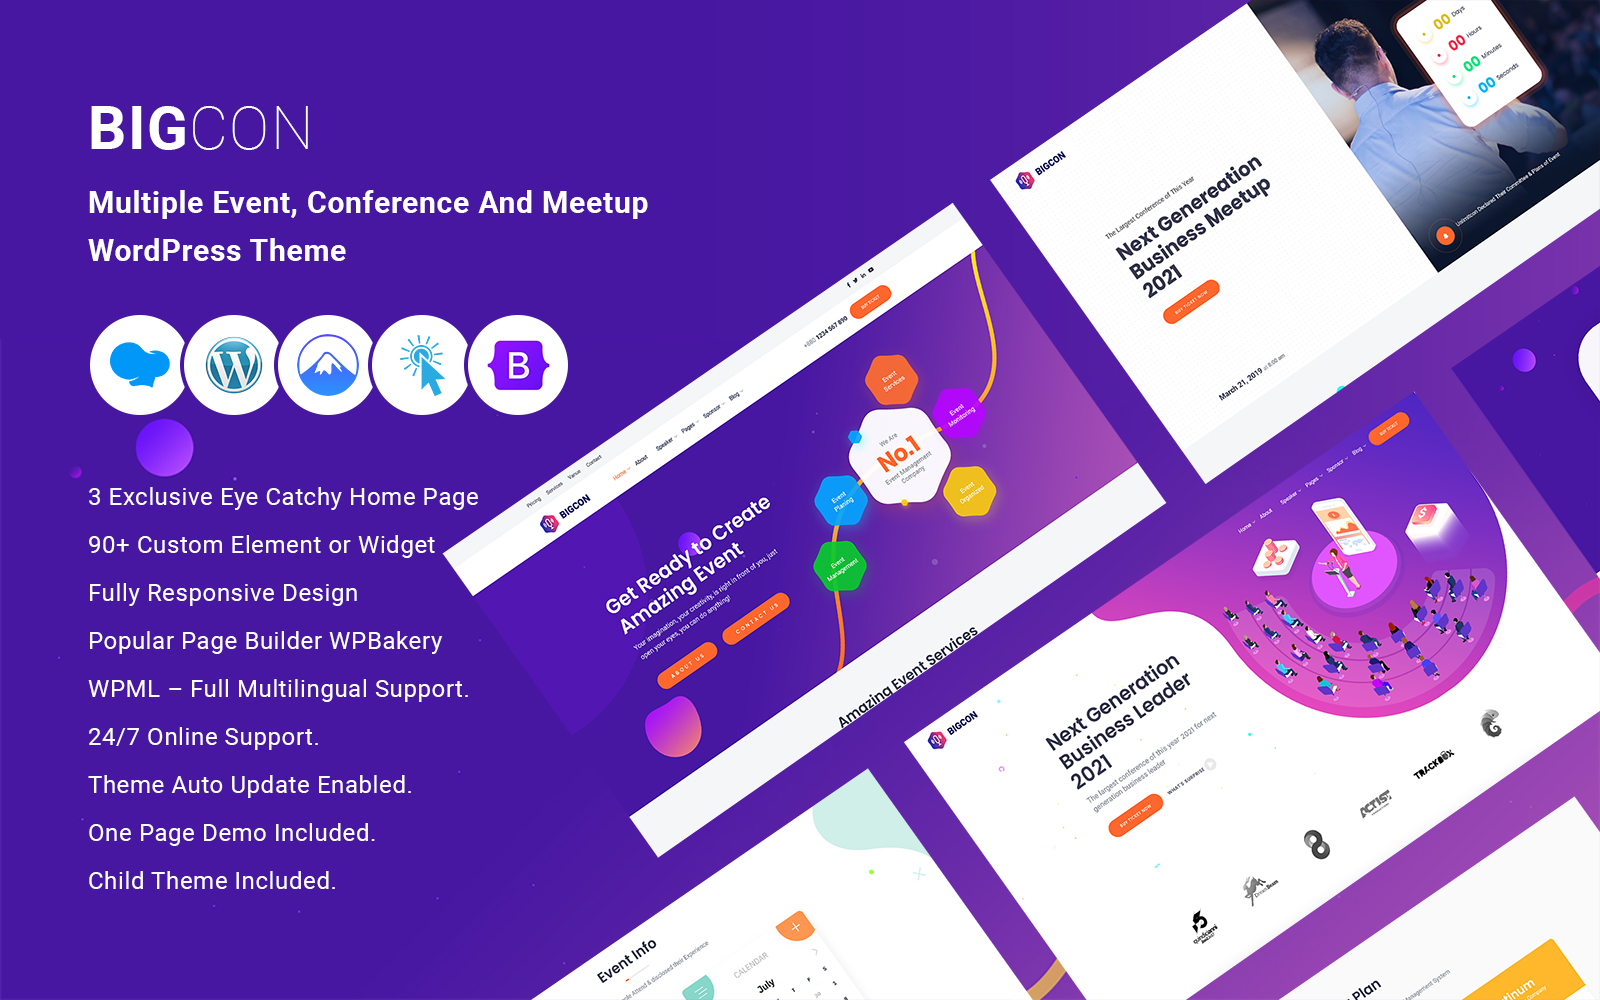 Bigcon - Multiple Event,Conference And Meetup WordPress Theme